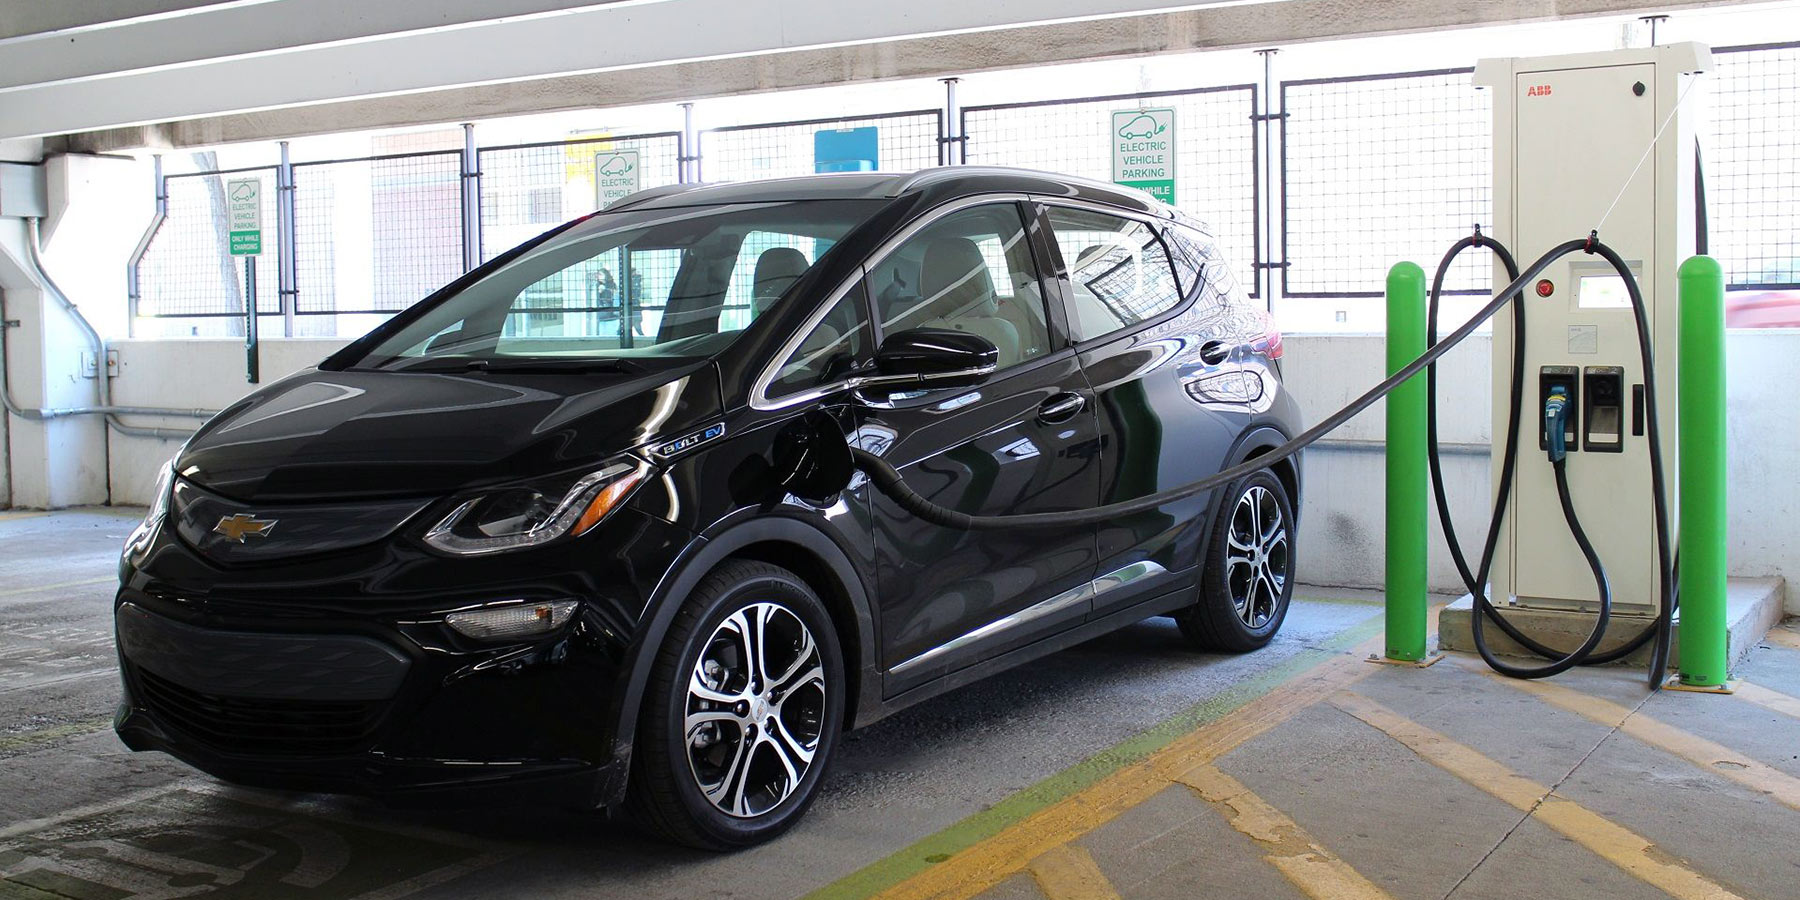 Chevy Bolt in parking structure